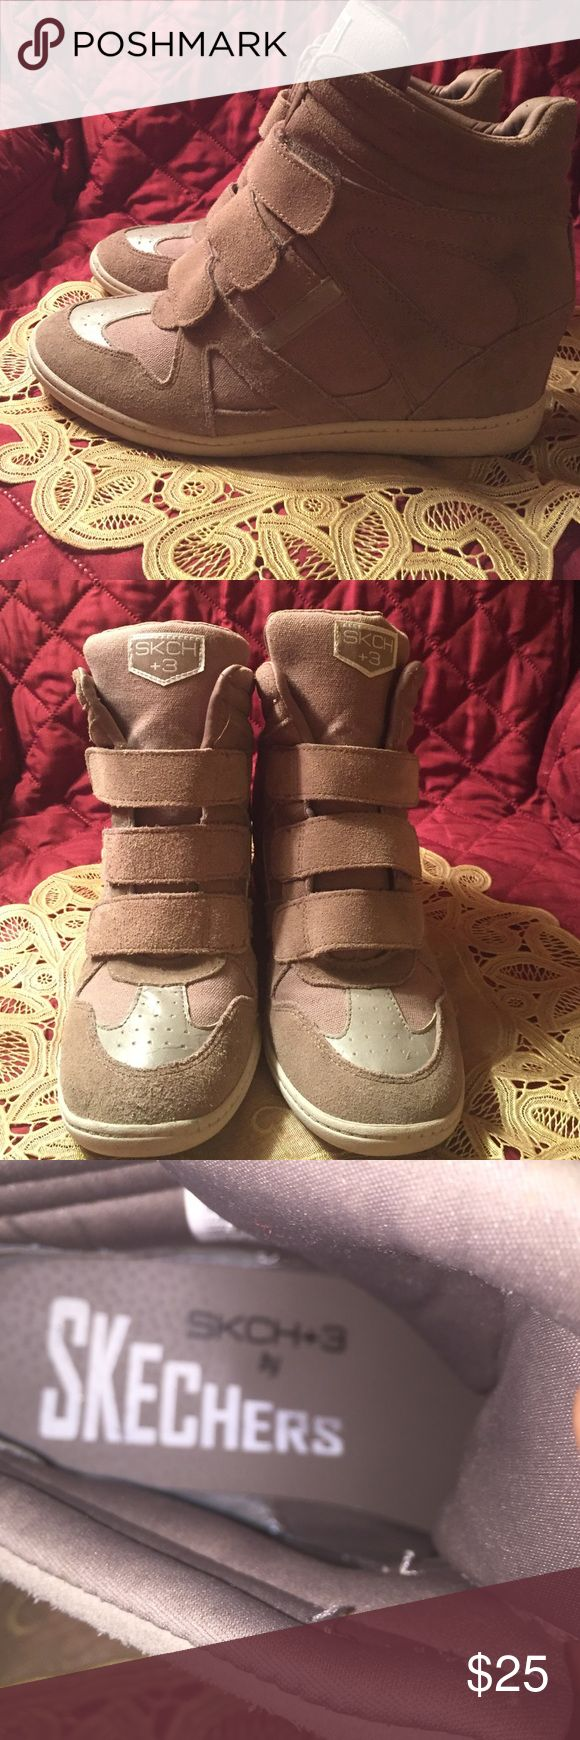 Skechers such +3 wedge sneakers Tanish color wedge sneakers in good condition. Wear at the bottom but overall good. Skechers Shoes Athletic Shoes